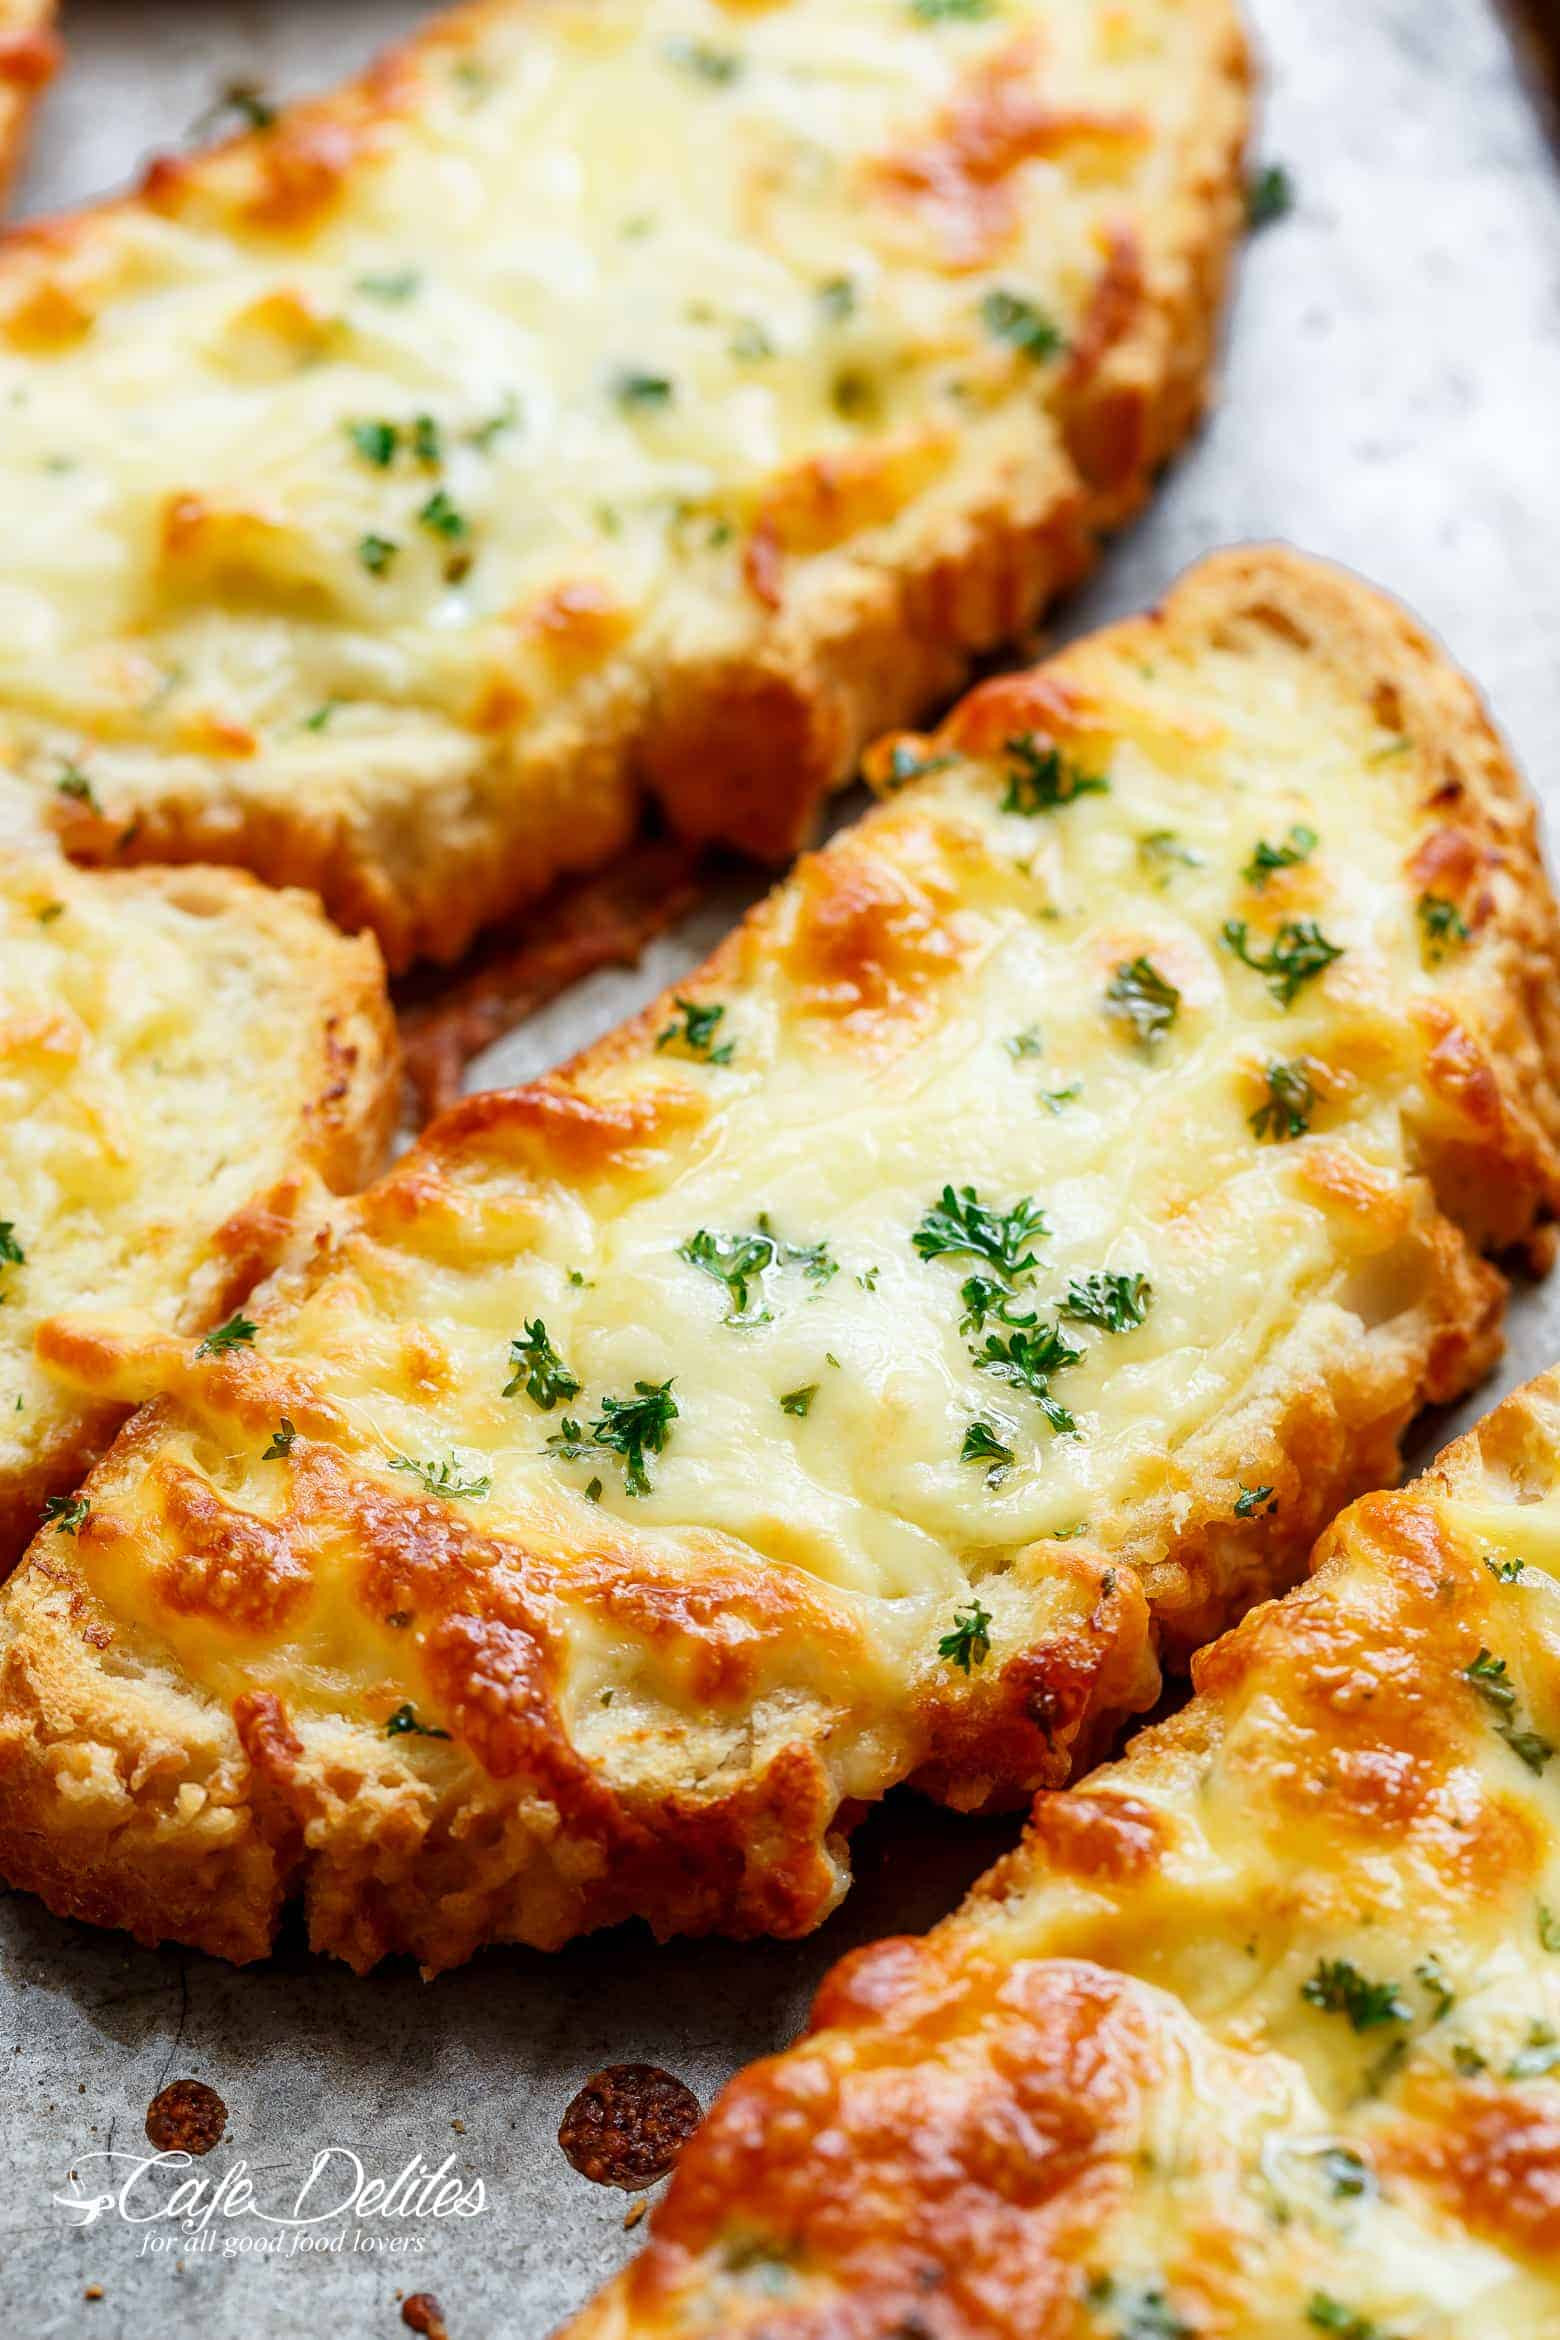 Garlic Cheese Bread  Individual Garlic Cheese Breads Single Serve RECIPE